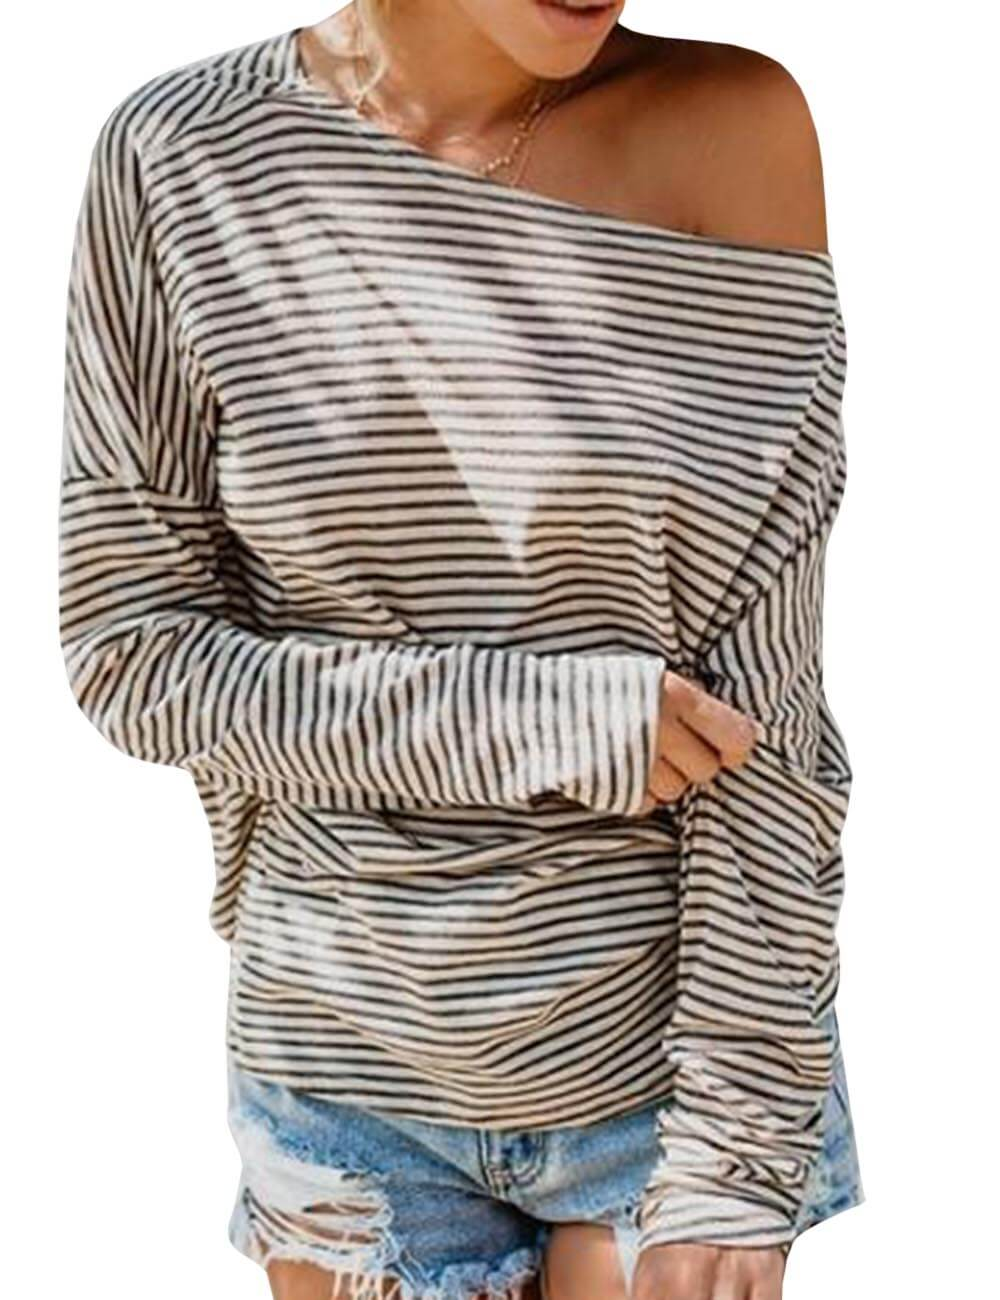 Women's One Shoulder Long Sleeve T-Shirt Multi-Wear Loose Off Shoulder Casual Striped Blouse Shirt Pullovers Top